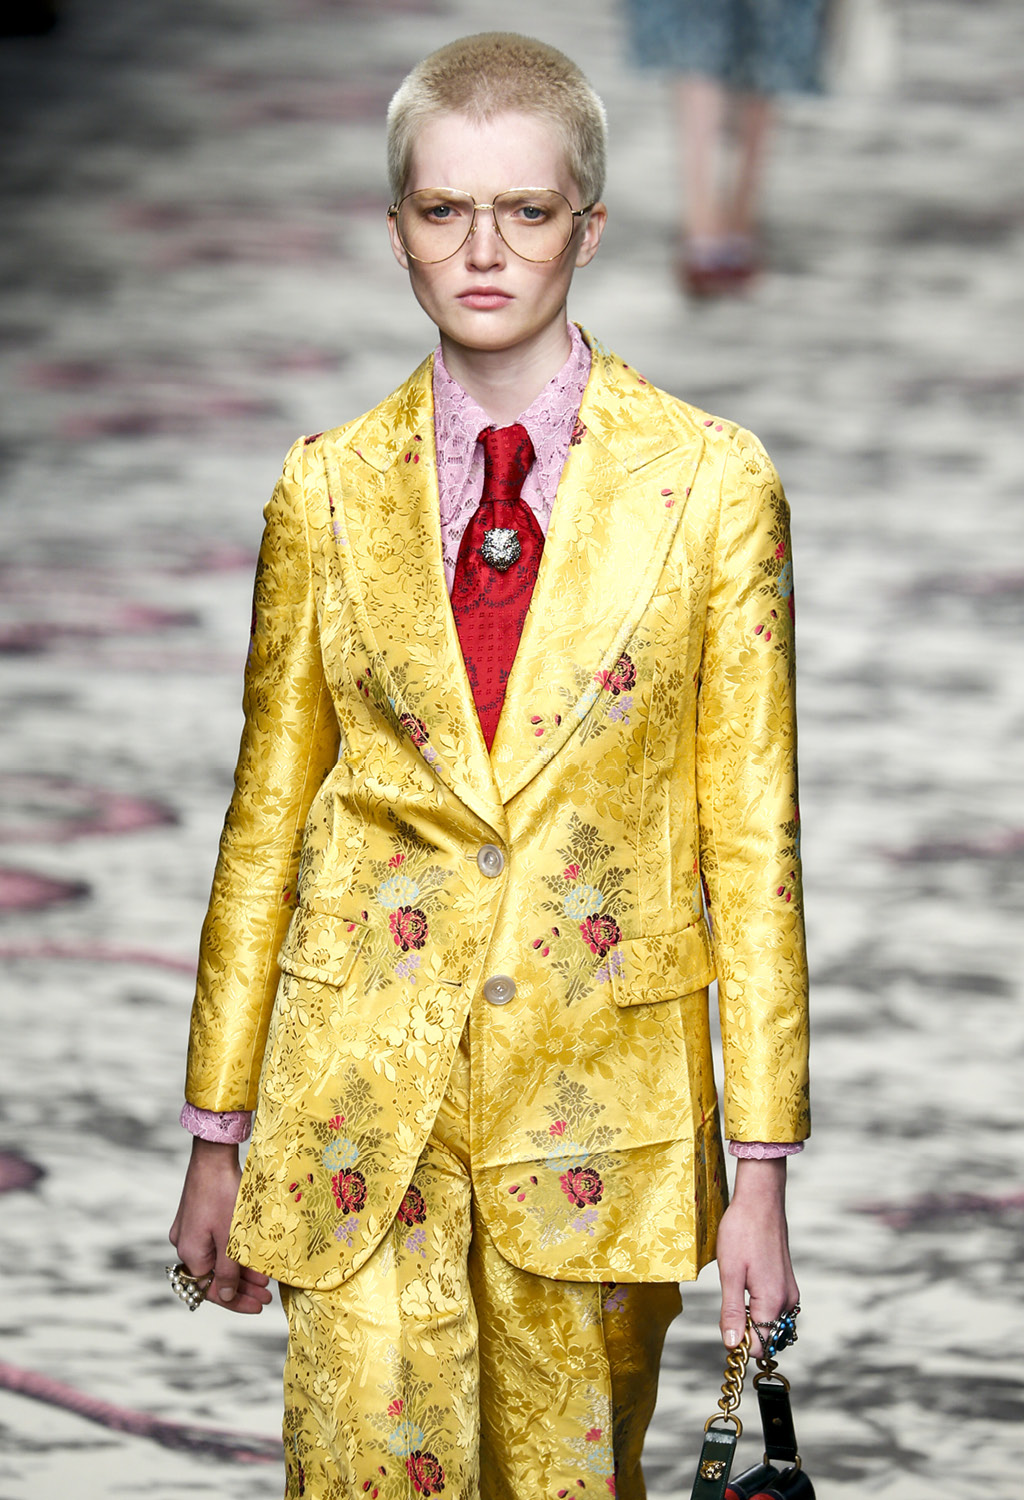 Gucci show as a part of Milan Fashion Week Spring/Summer 2016 on September